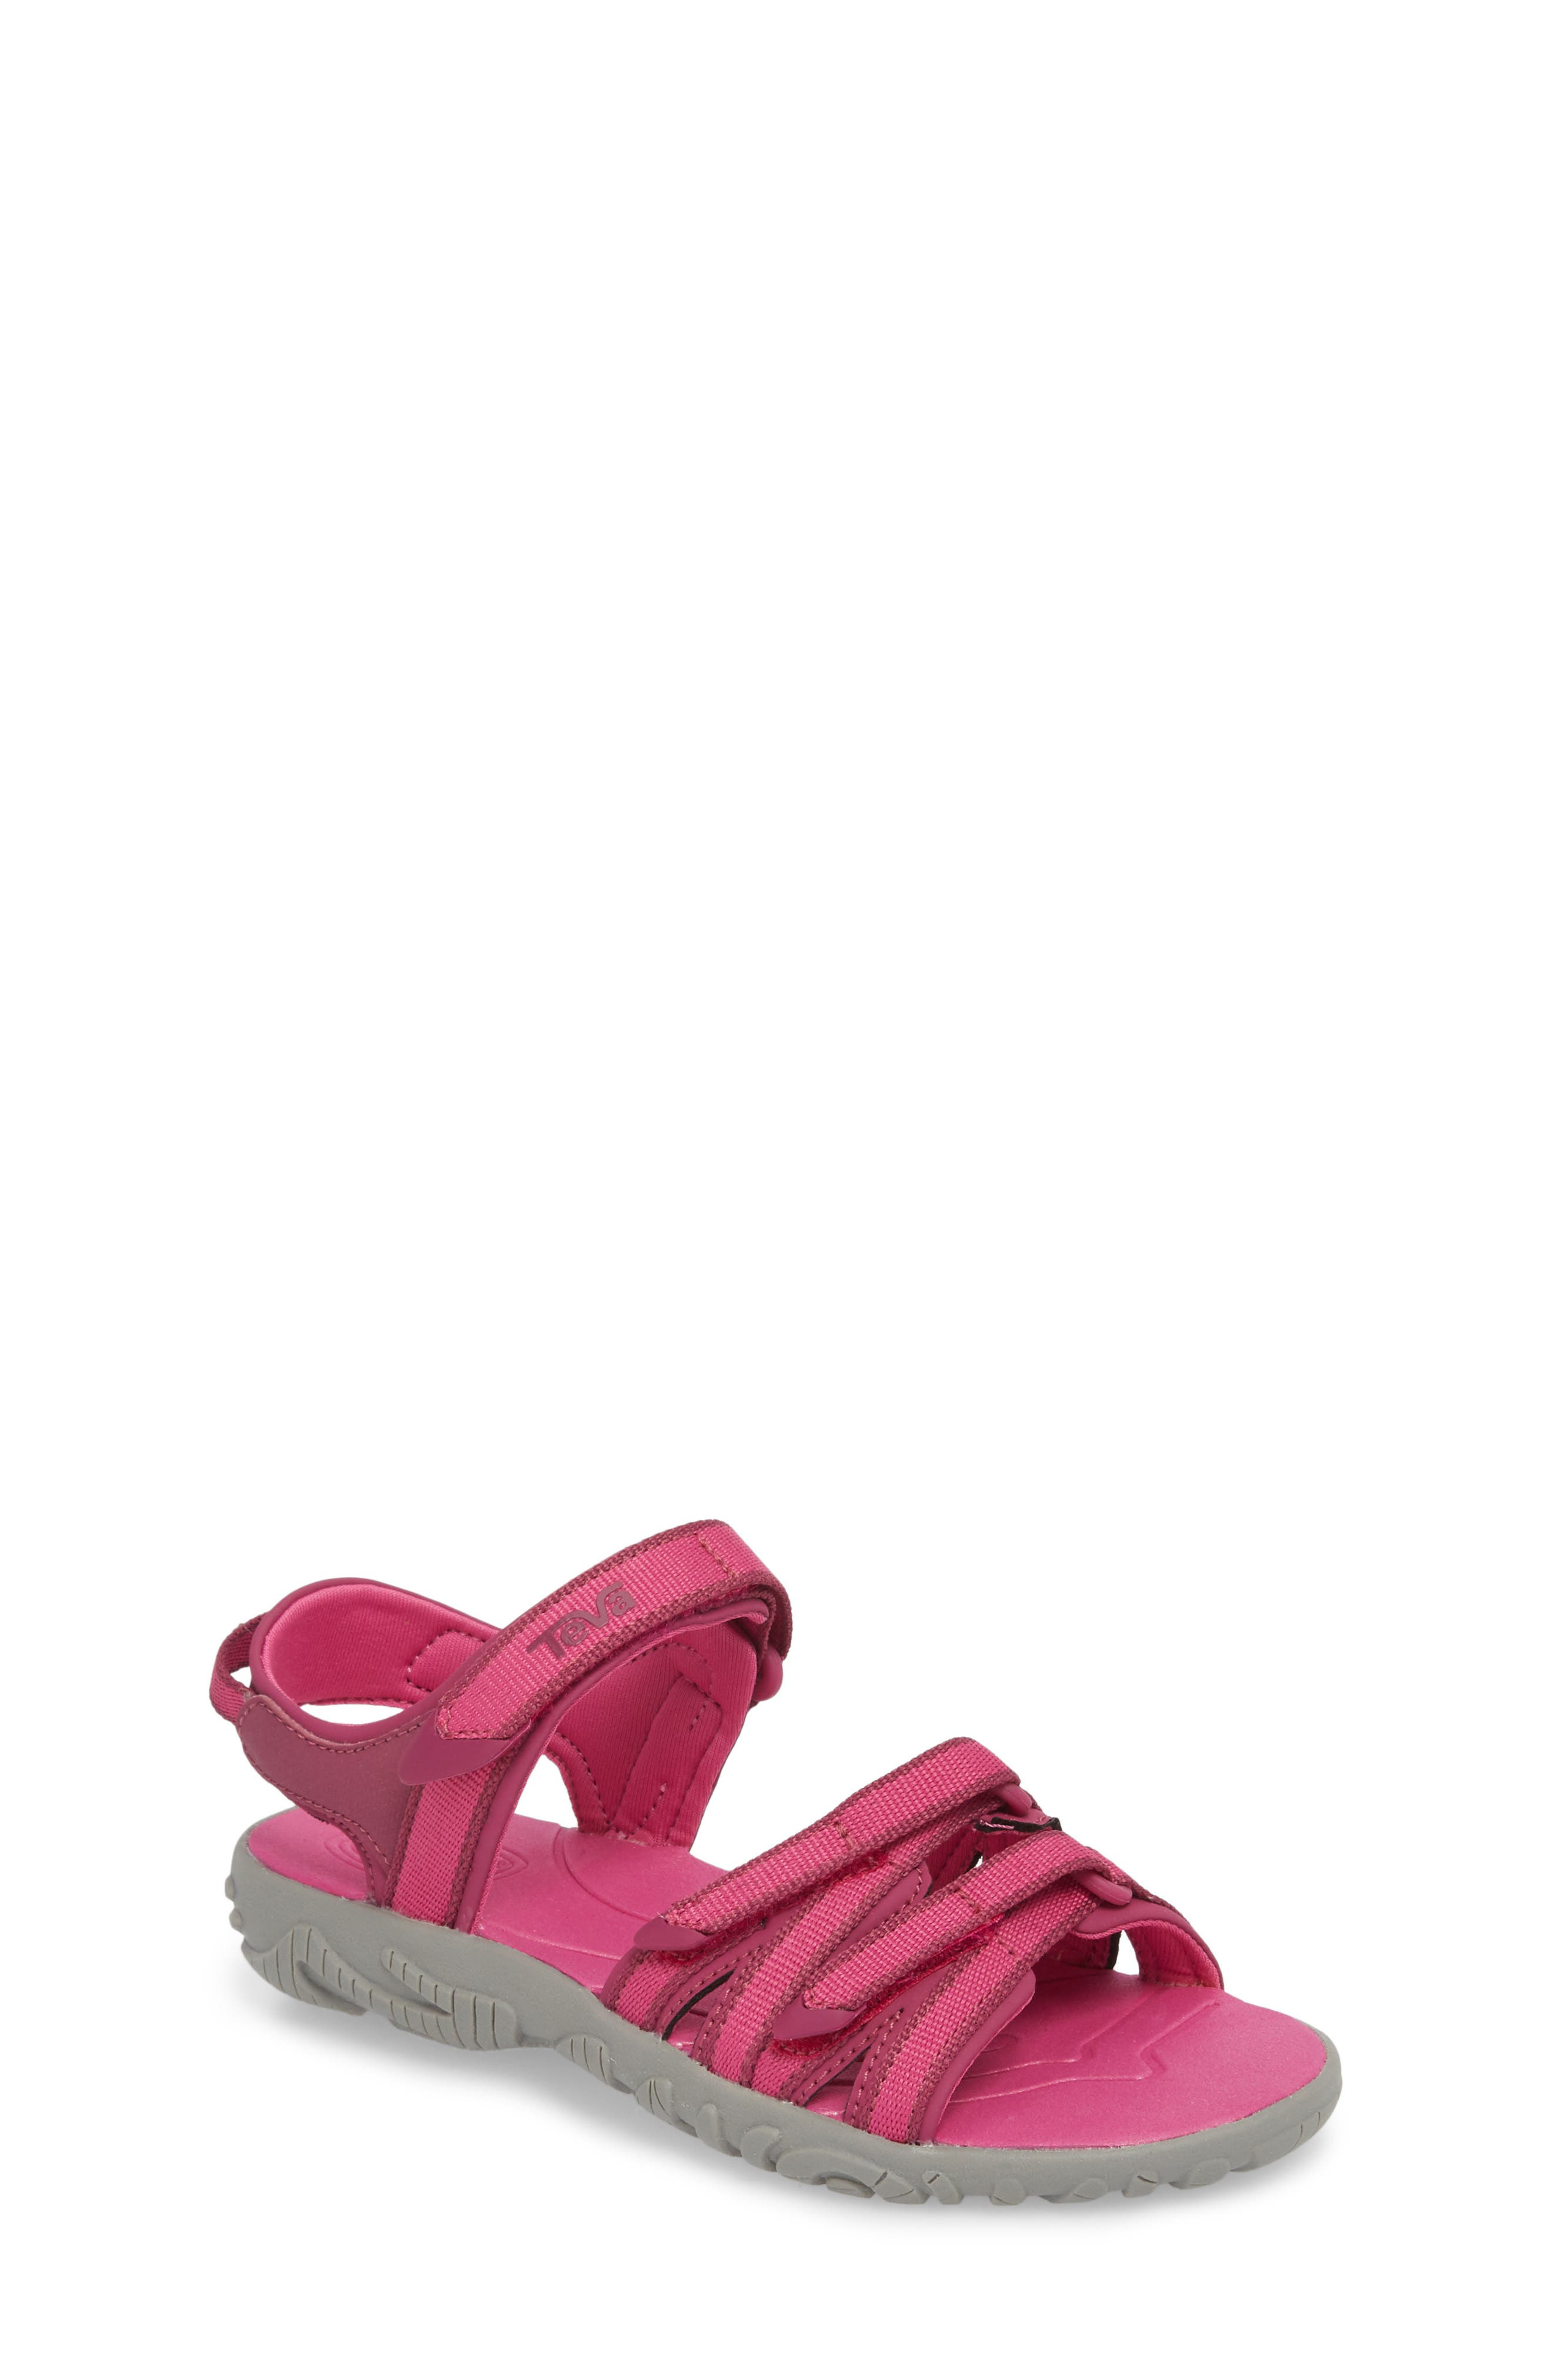 Teva Tirra Sport Sandal (Toddler, Little Kid & Big Kid)